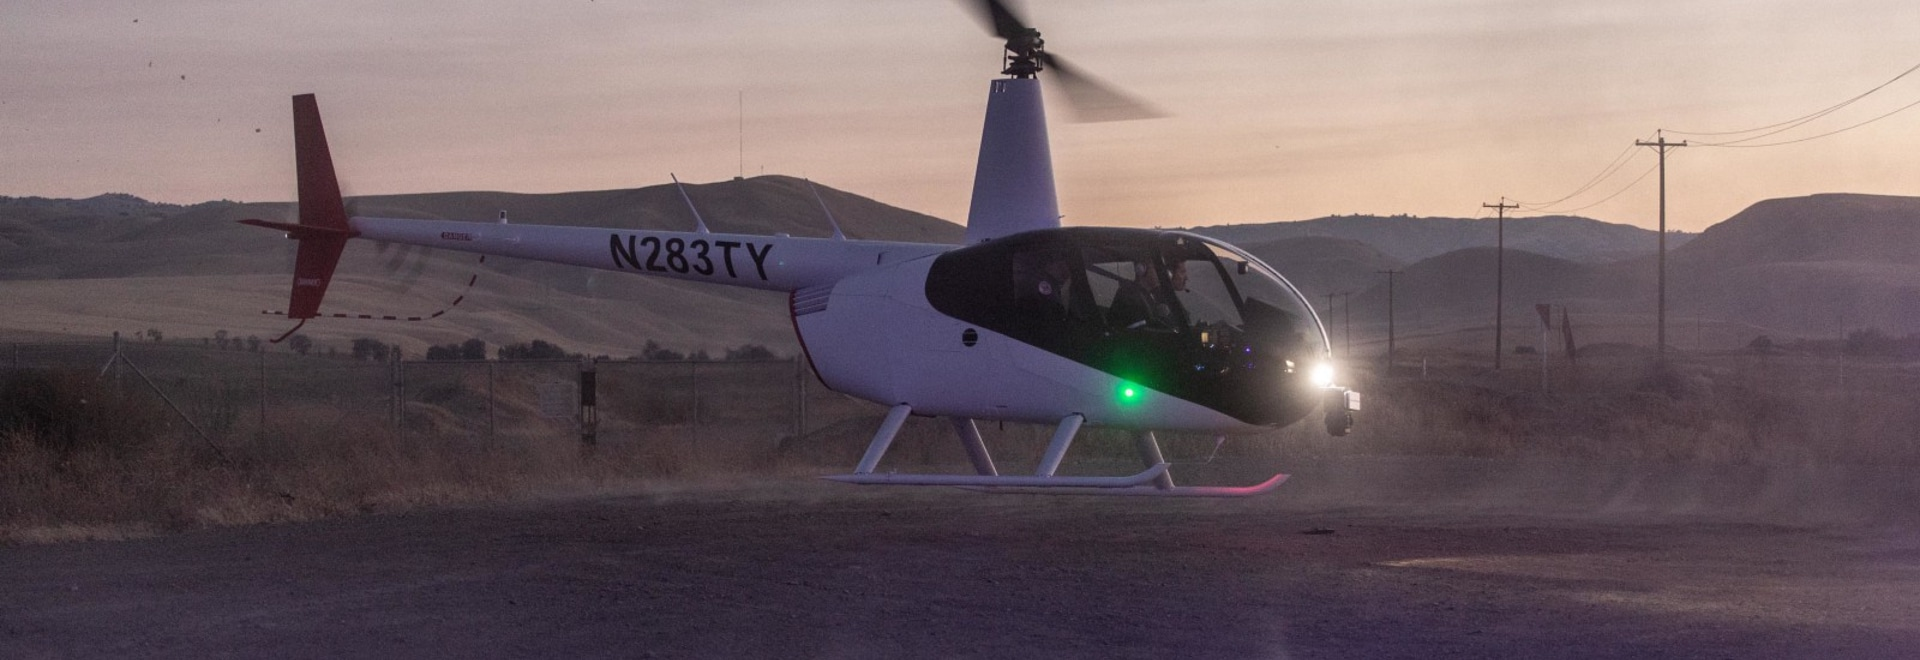 A SkyRyse helicopter using new VTOL technology could help revolutionize urban transportation.